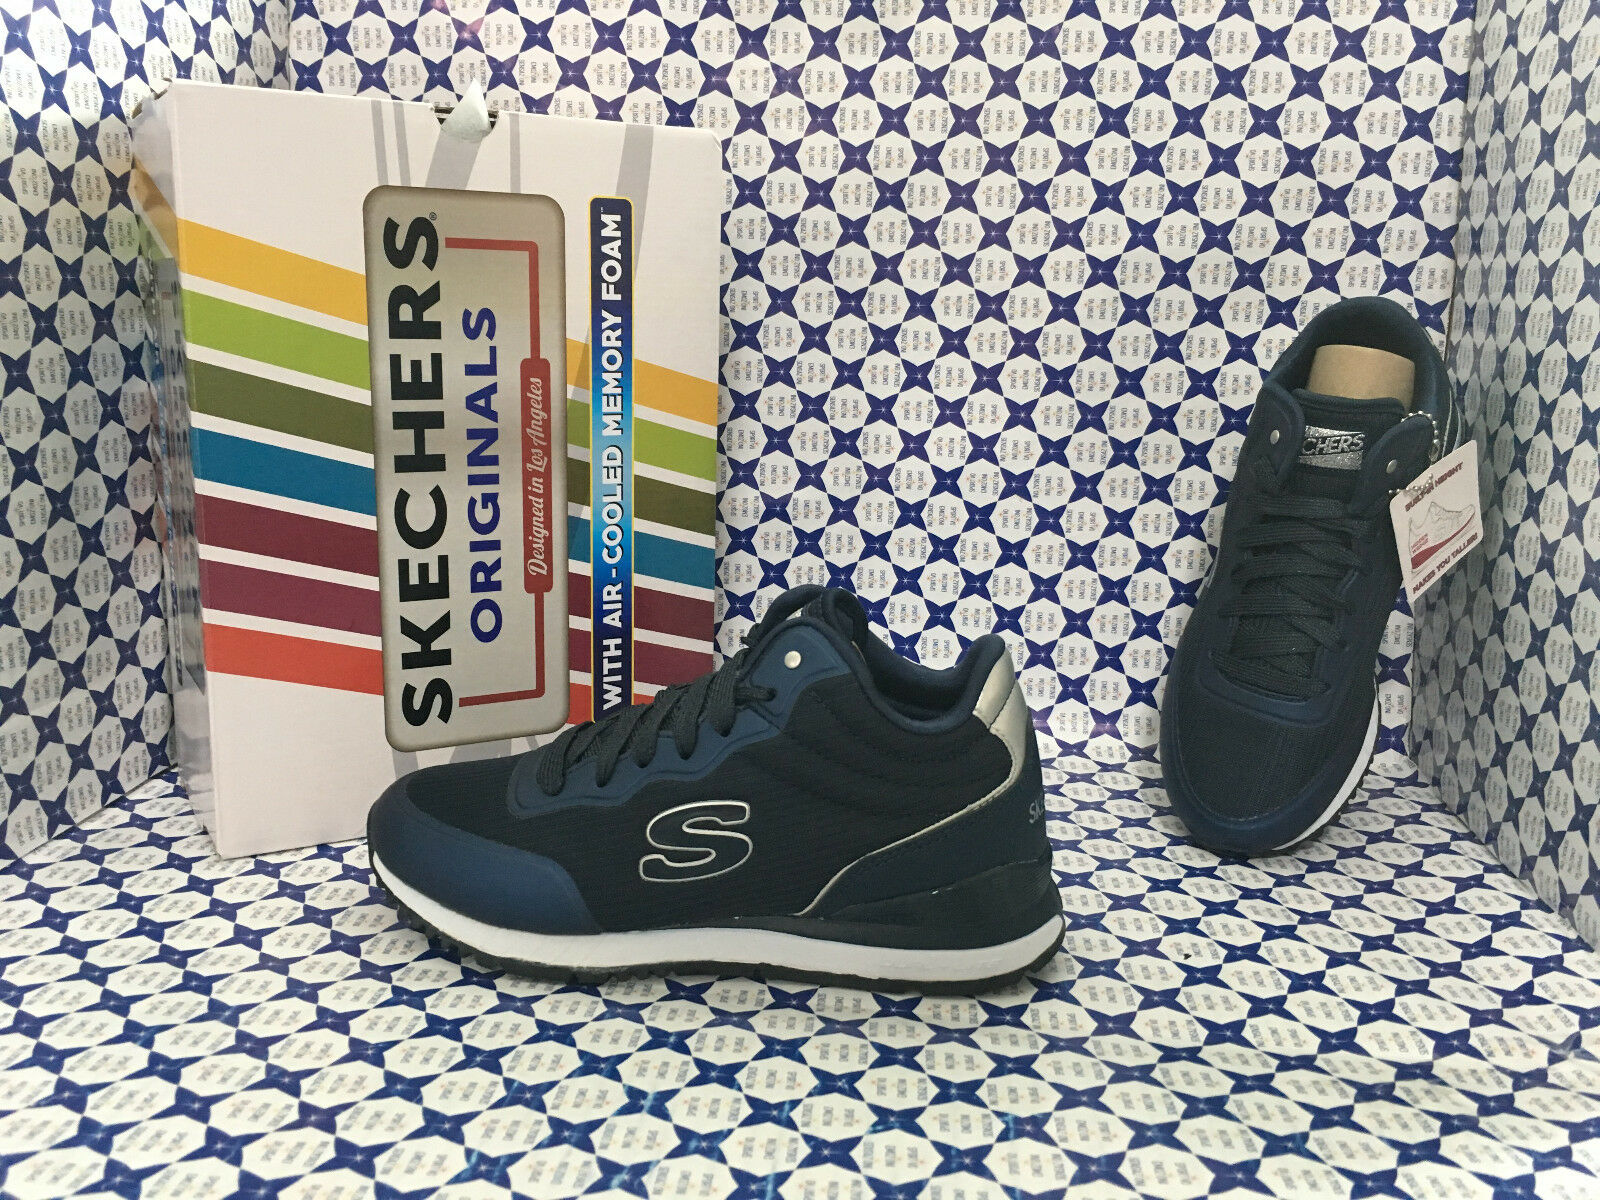 Scarpe Skechers Donna - Sunlite Vega High - Blu Navy - 920